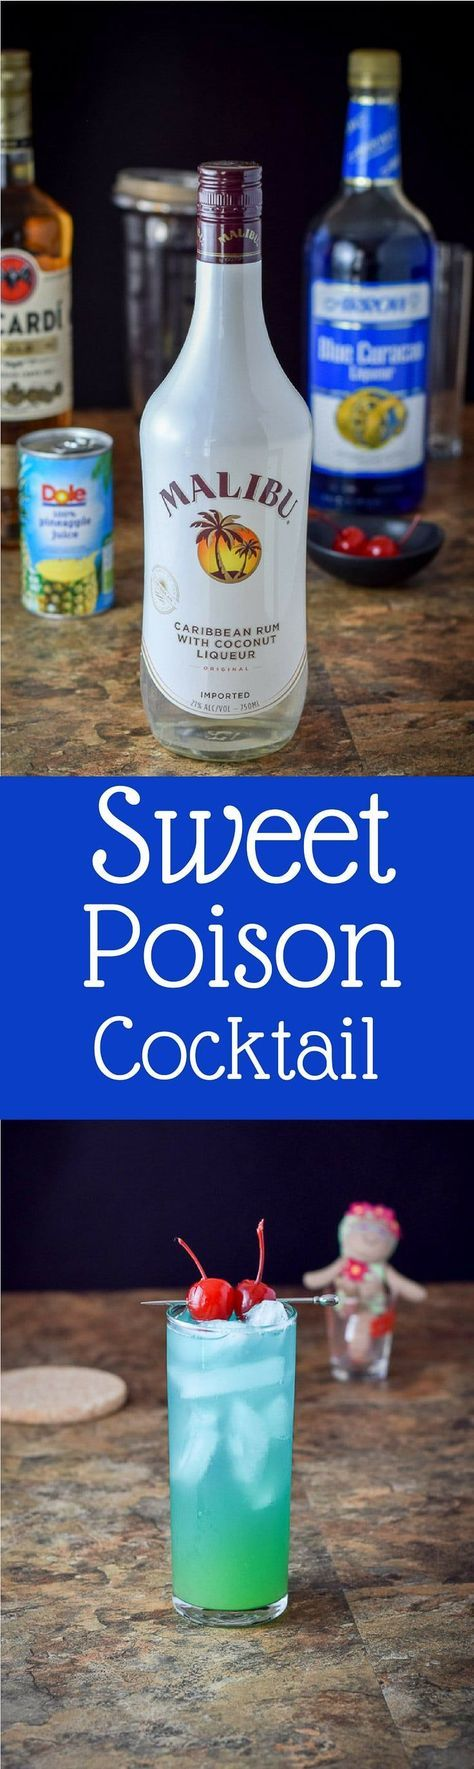 Aptly named sweet poison cocktail is dangerously delicious! Two types of rum, blue Curacao and some pineapple juice in this tropical cocktail. Make it by the glass unless you're with a group! https://ddel.co/swtpson via @dishesdelish